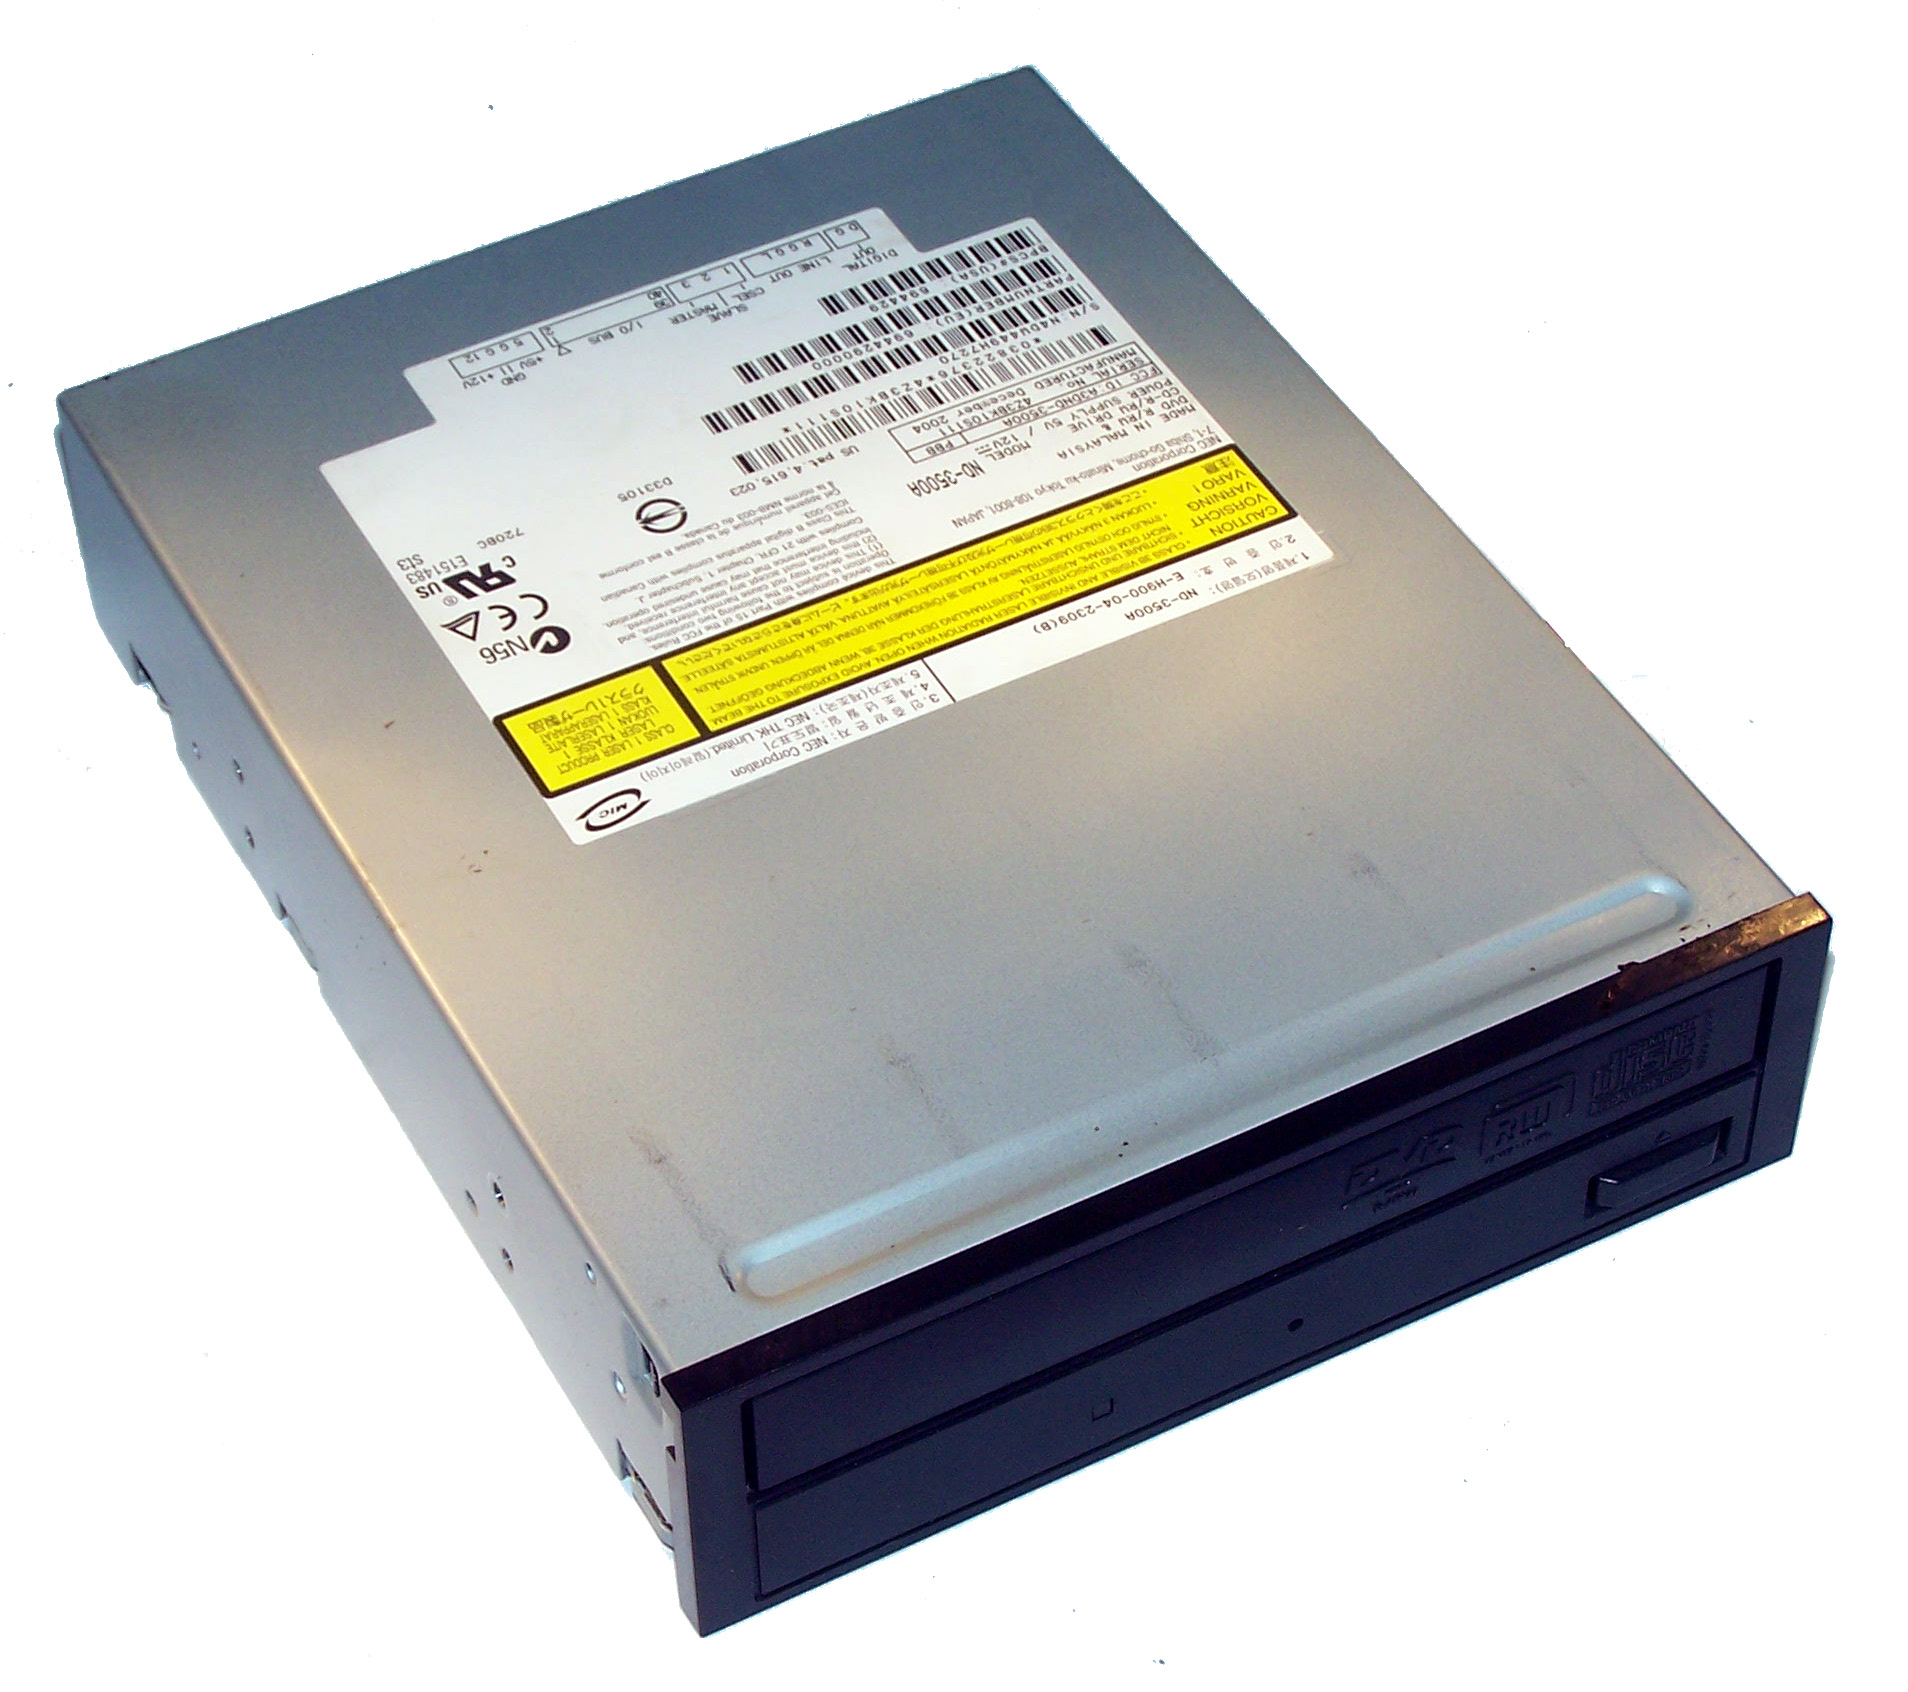 DVD RW ND 3500AG DOWNLOAD DRIVERS